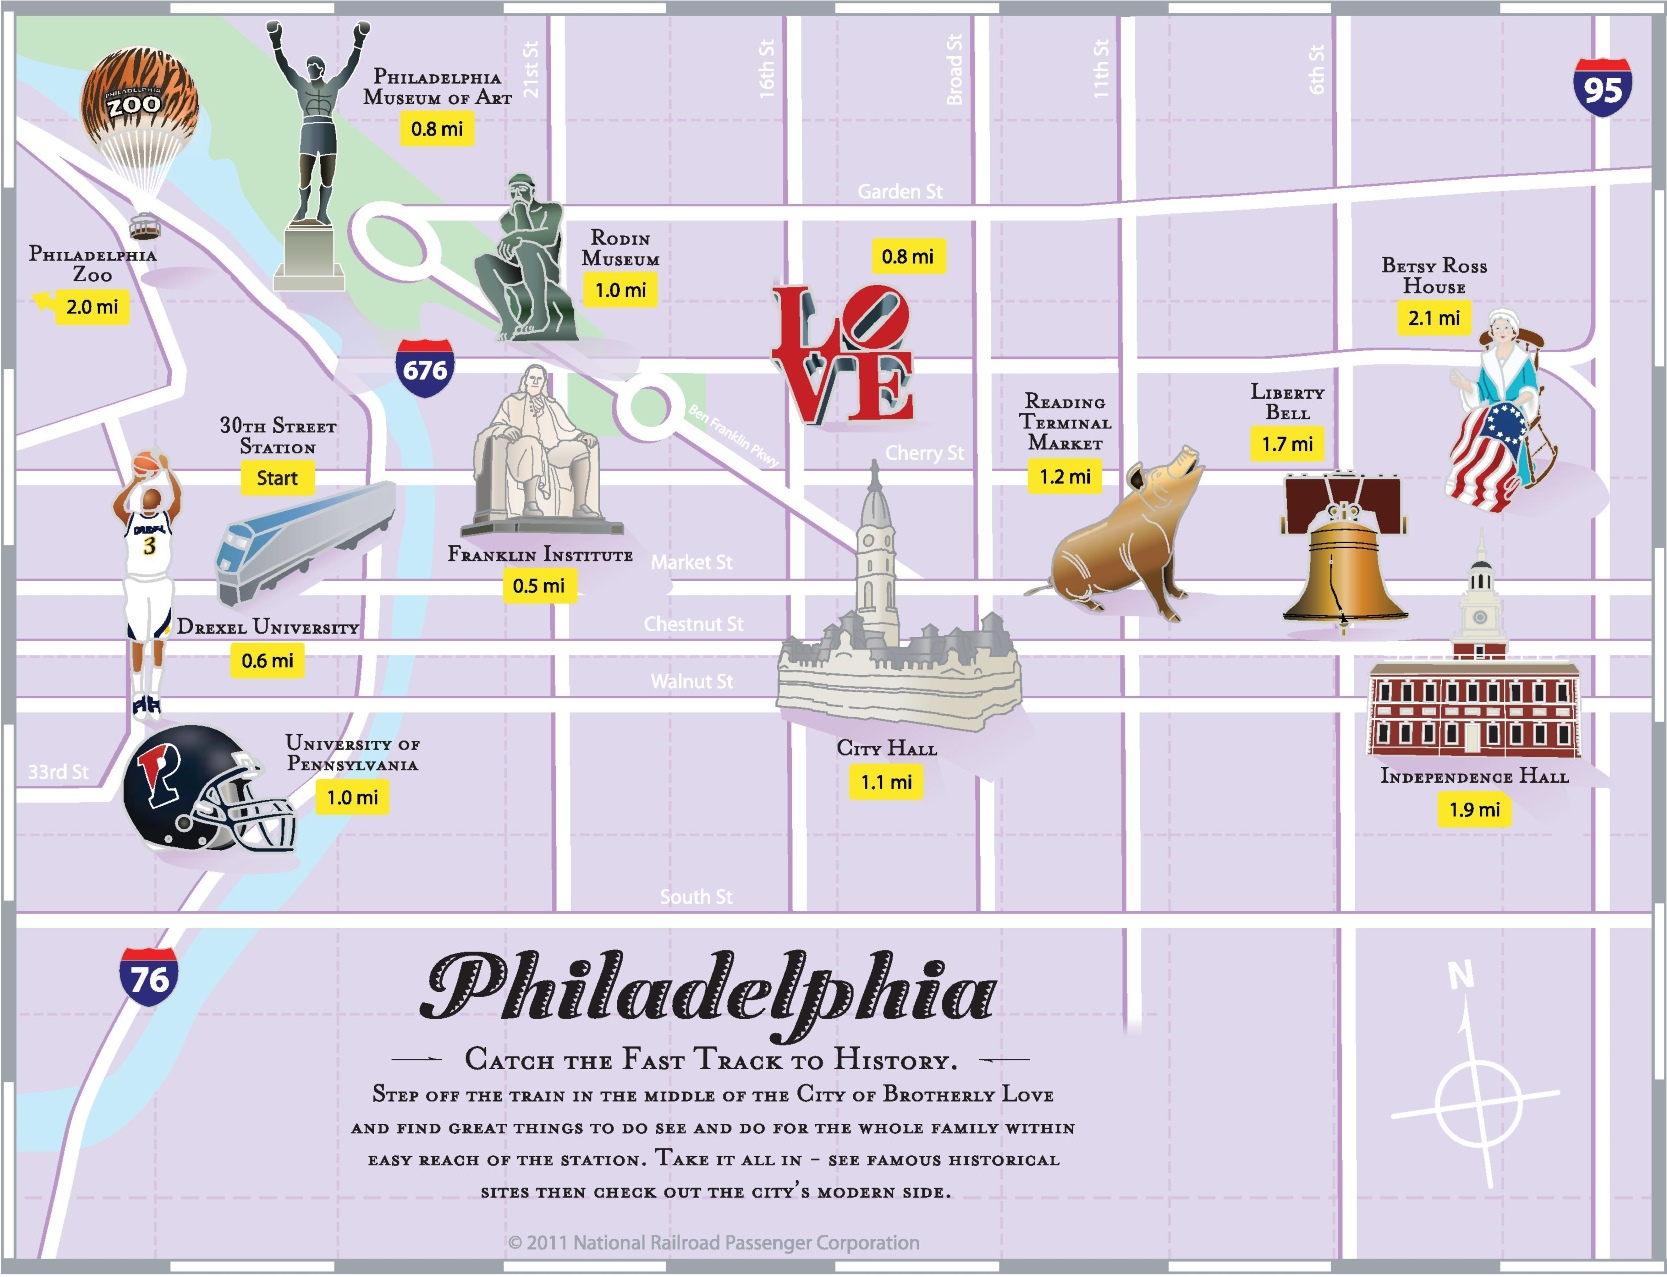 Philadelphia tourist attractions map – Seattle Tourist Attractions Map